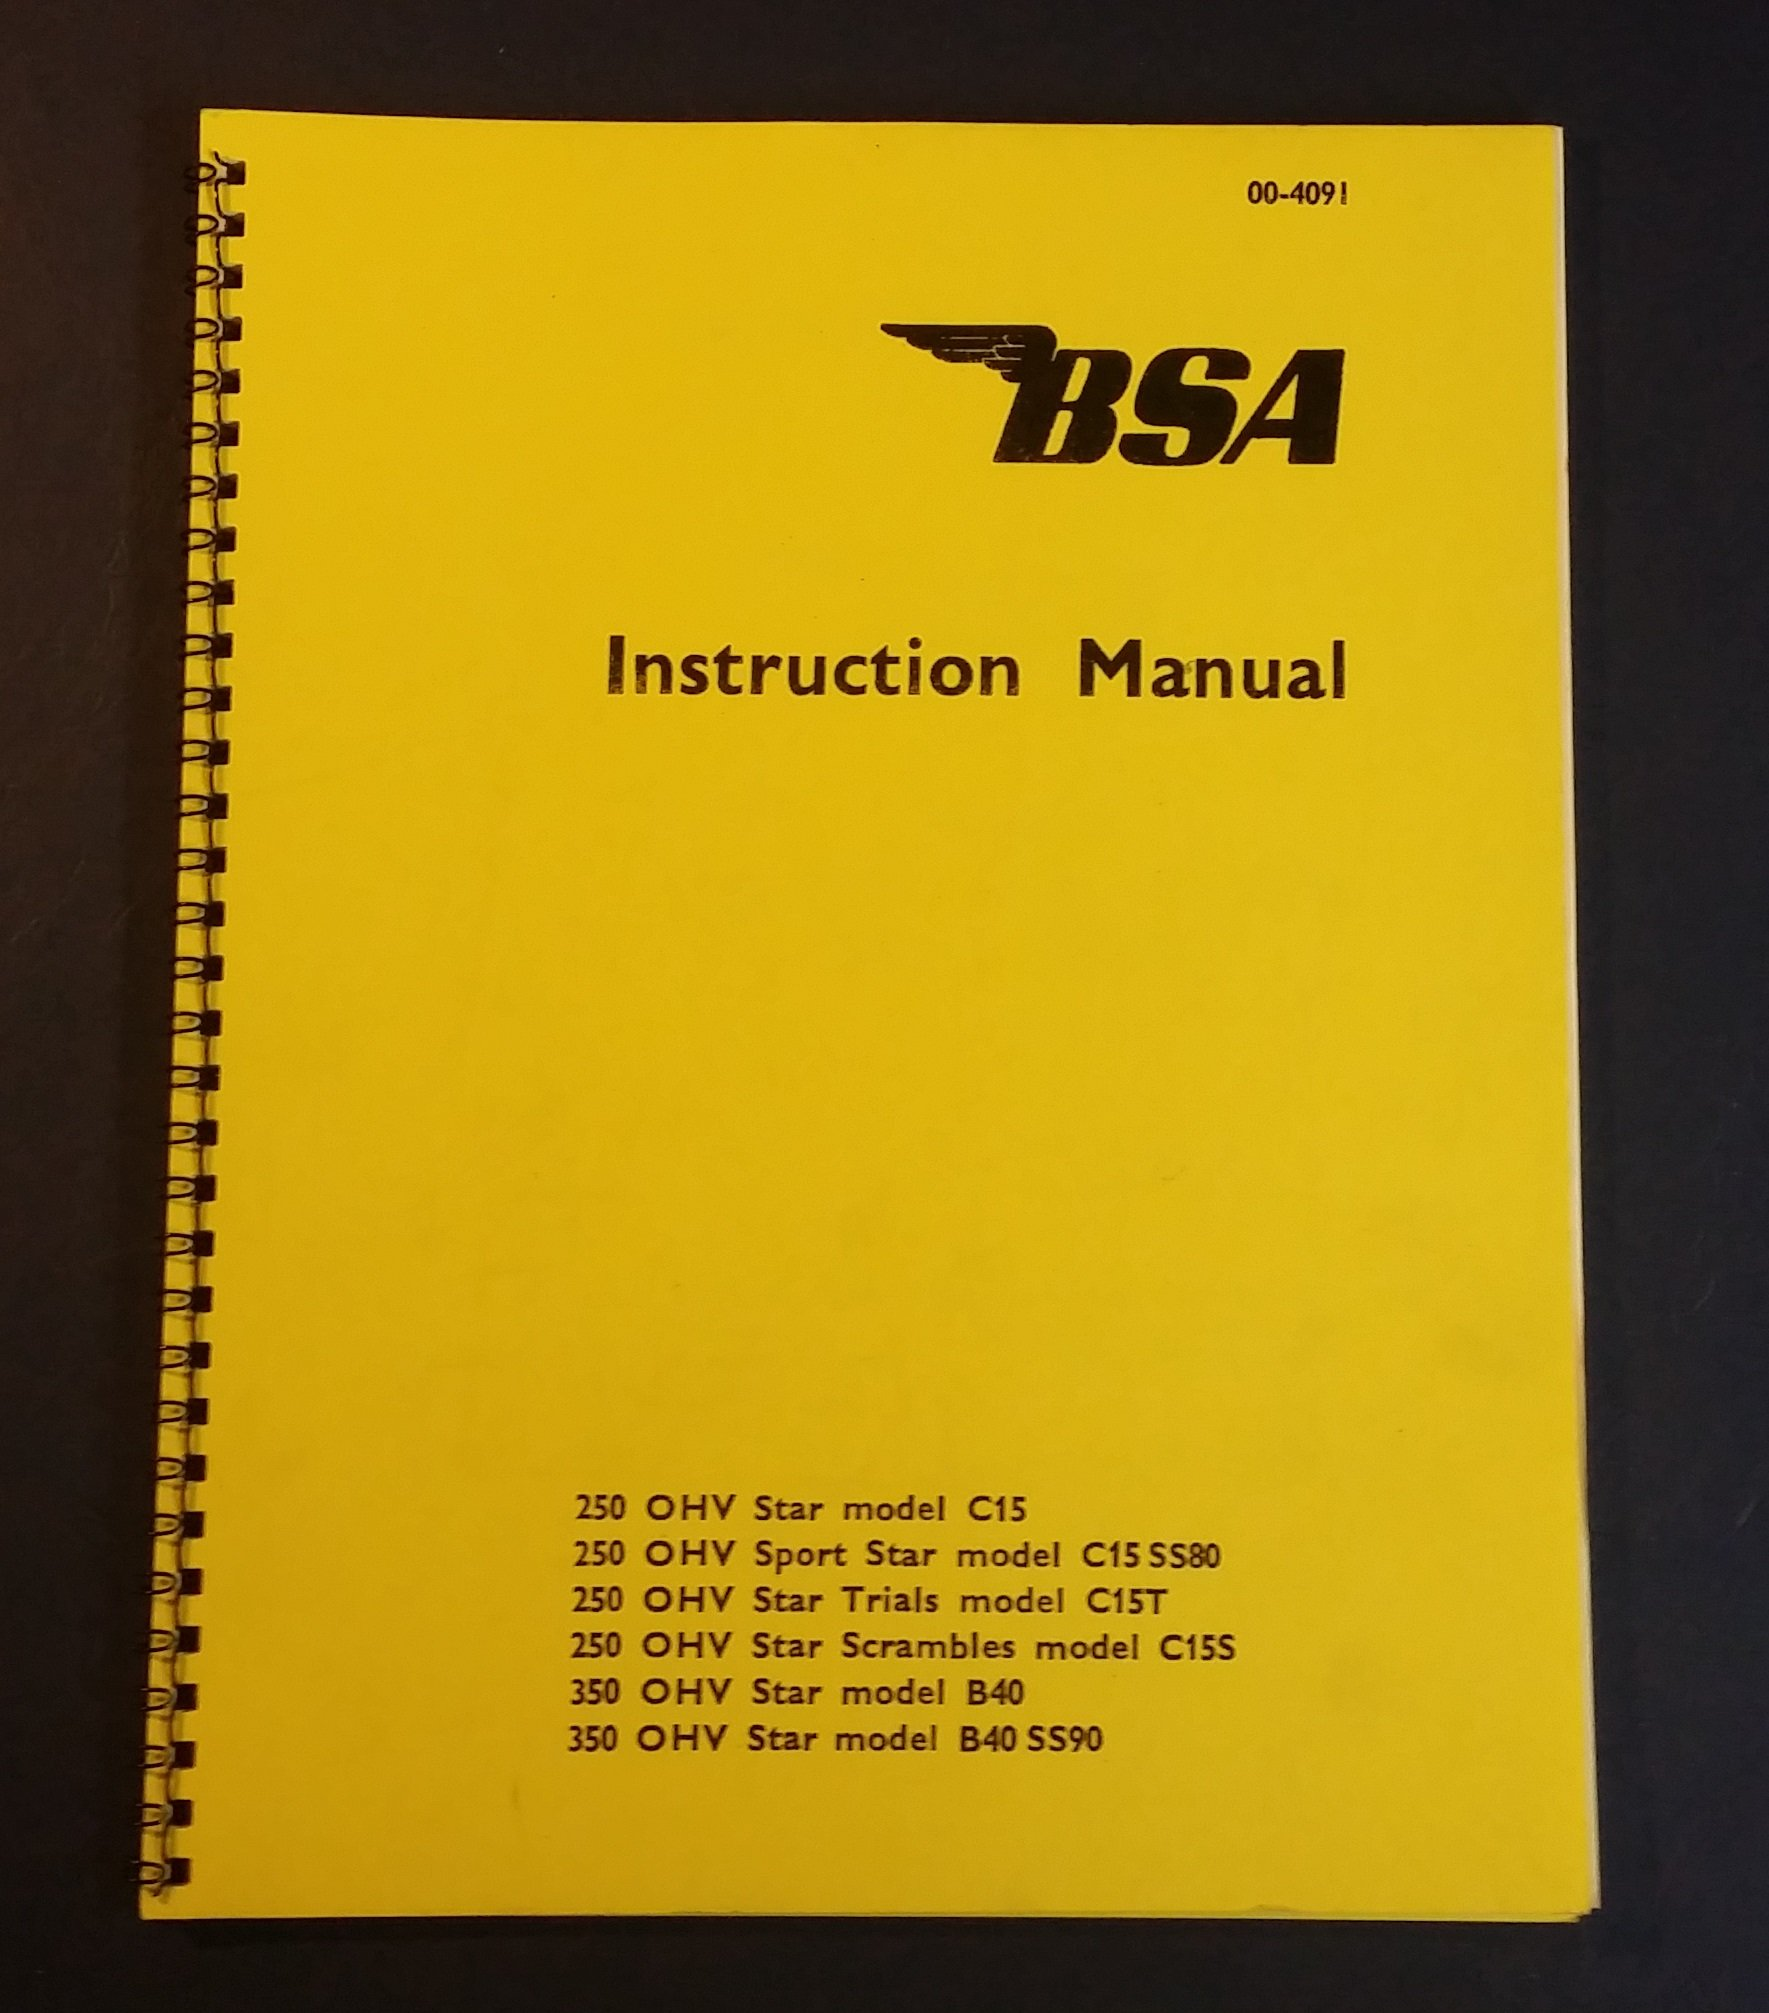 00-4091. $20.00. In stock. Instruction Manual, BSA ...